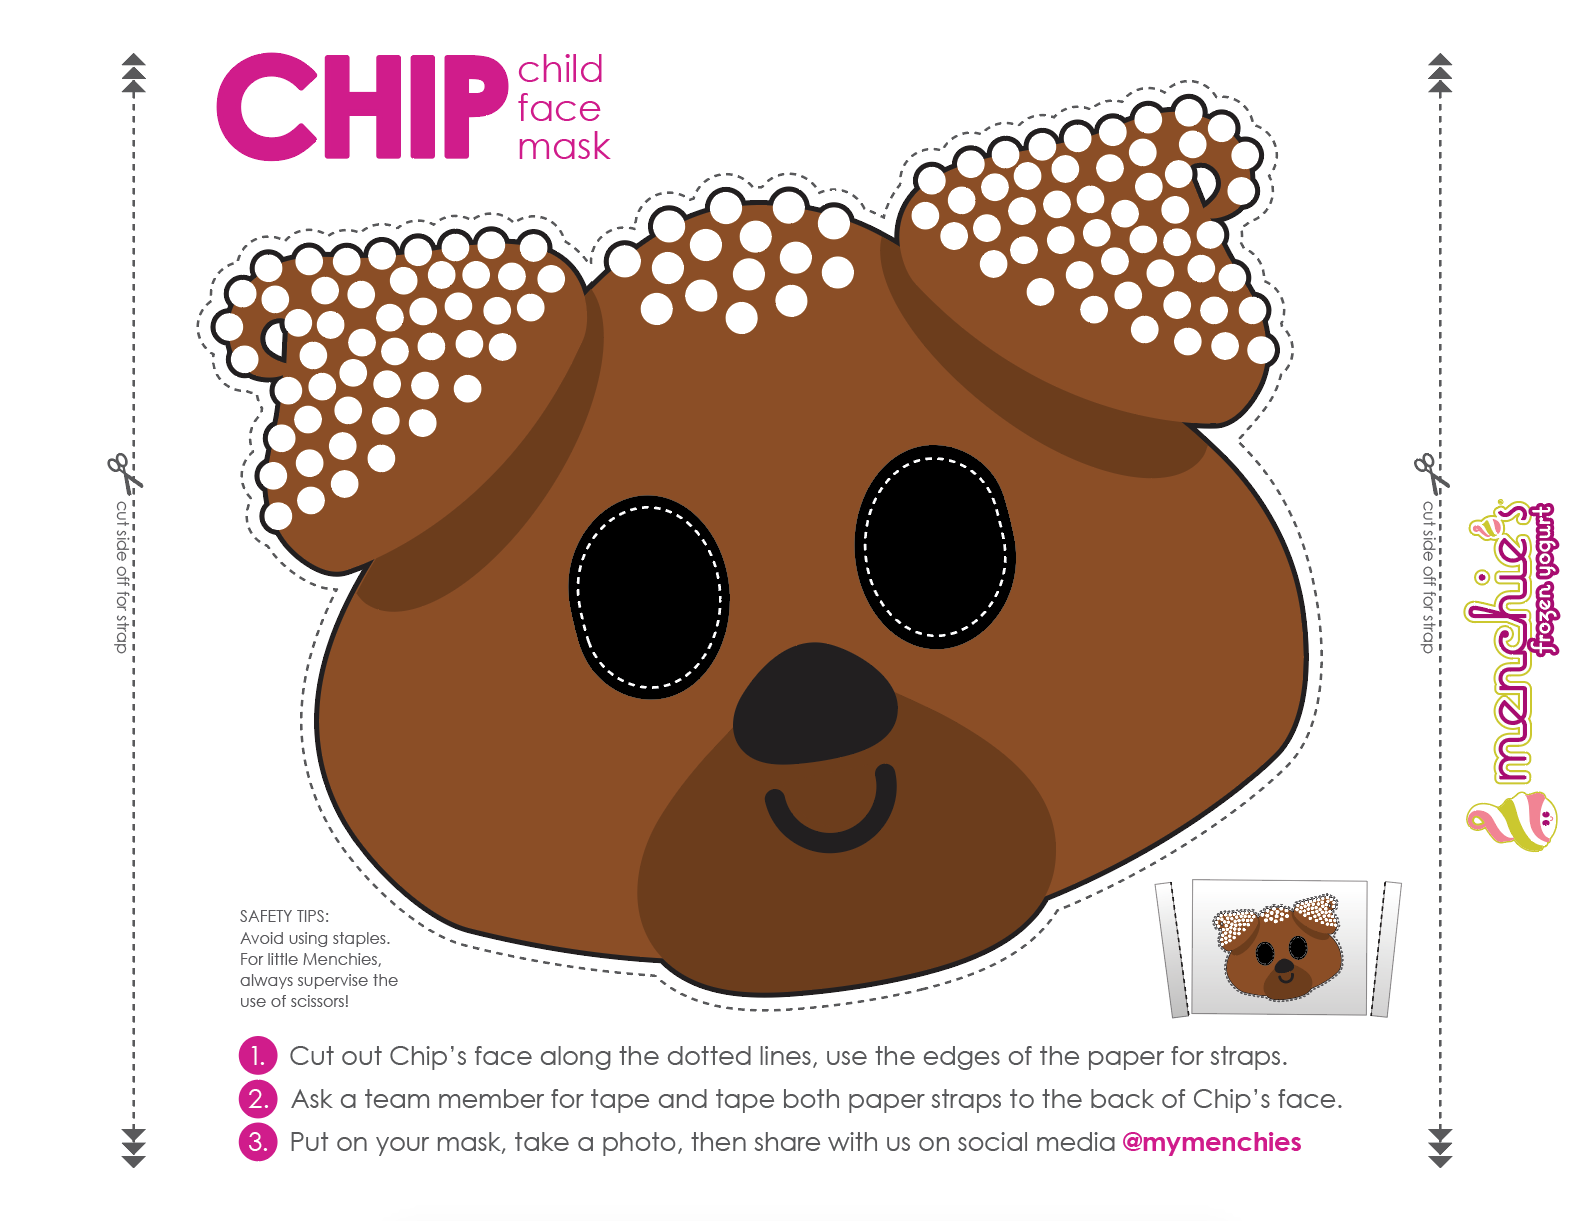 Create a Chip mask!